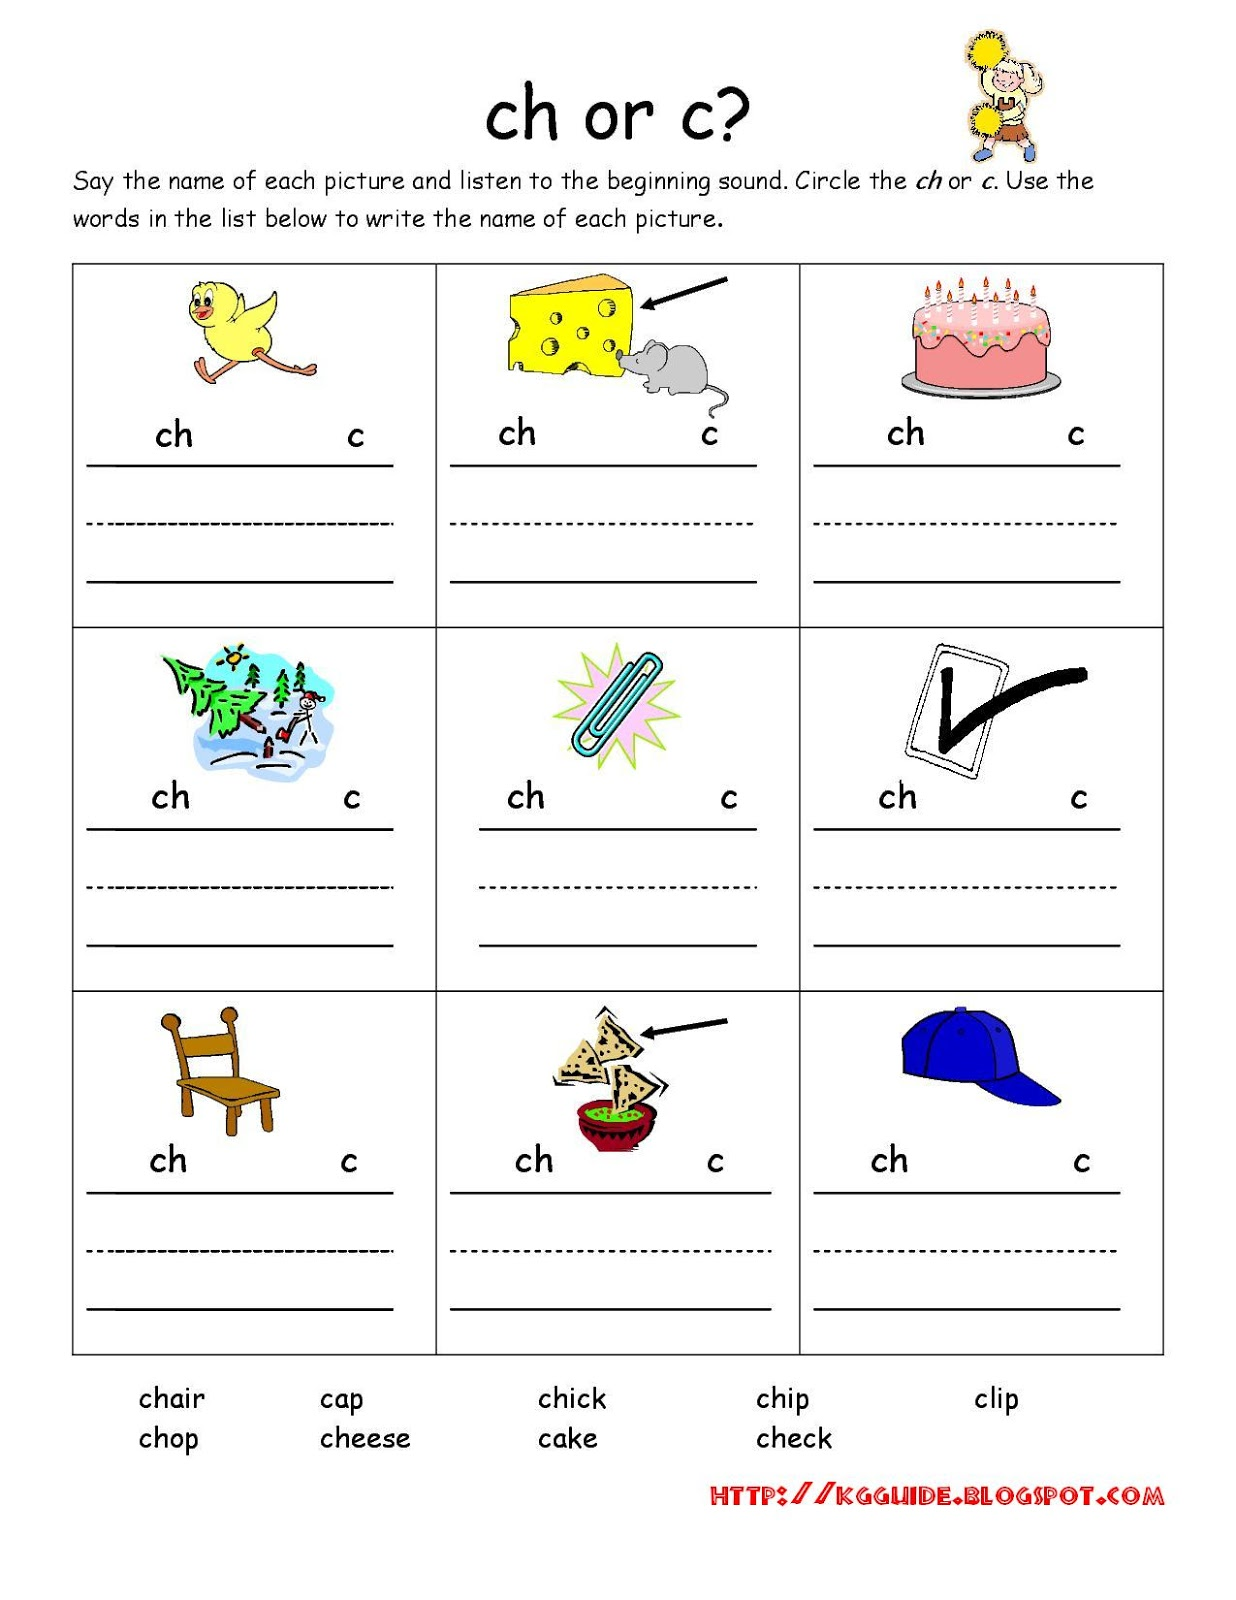 2 For The Th Sound Worksheet Free